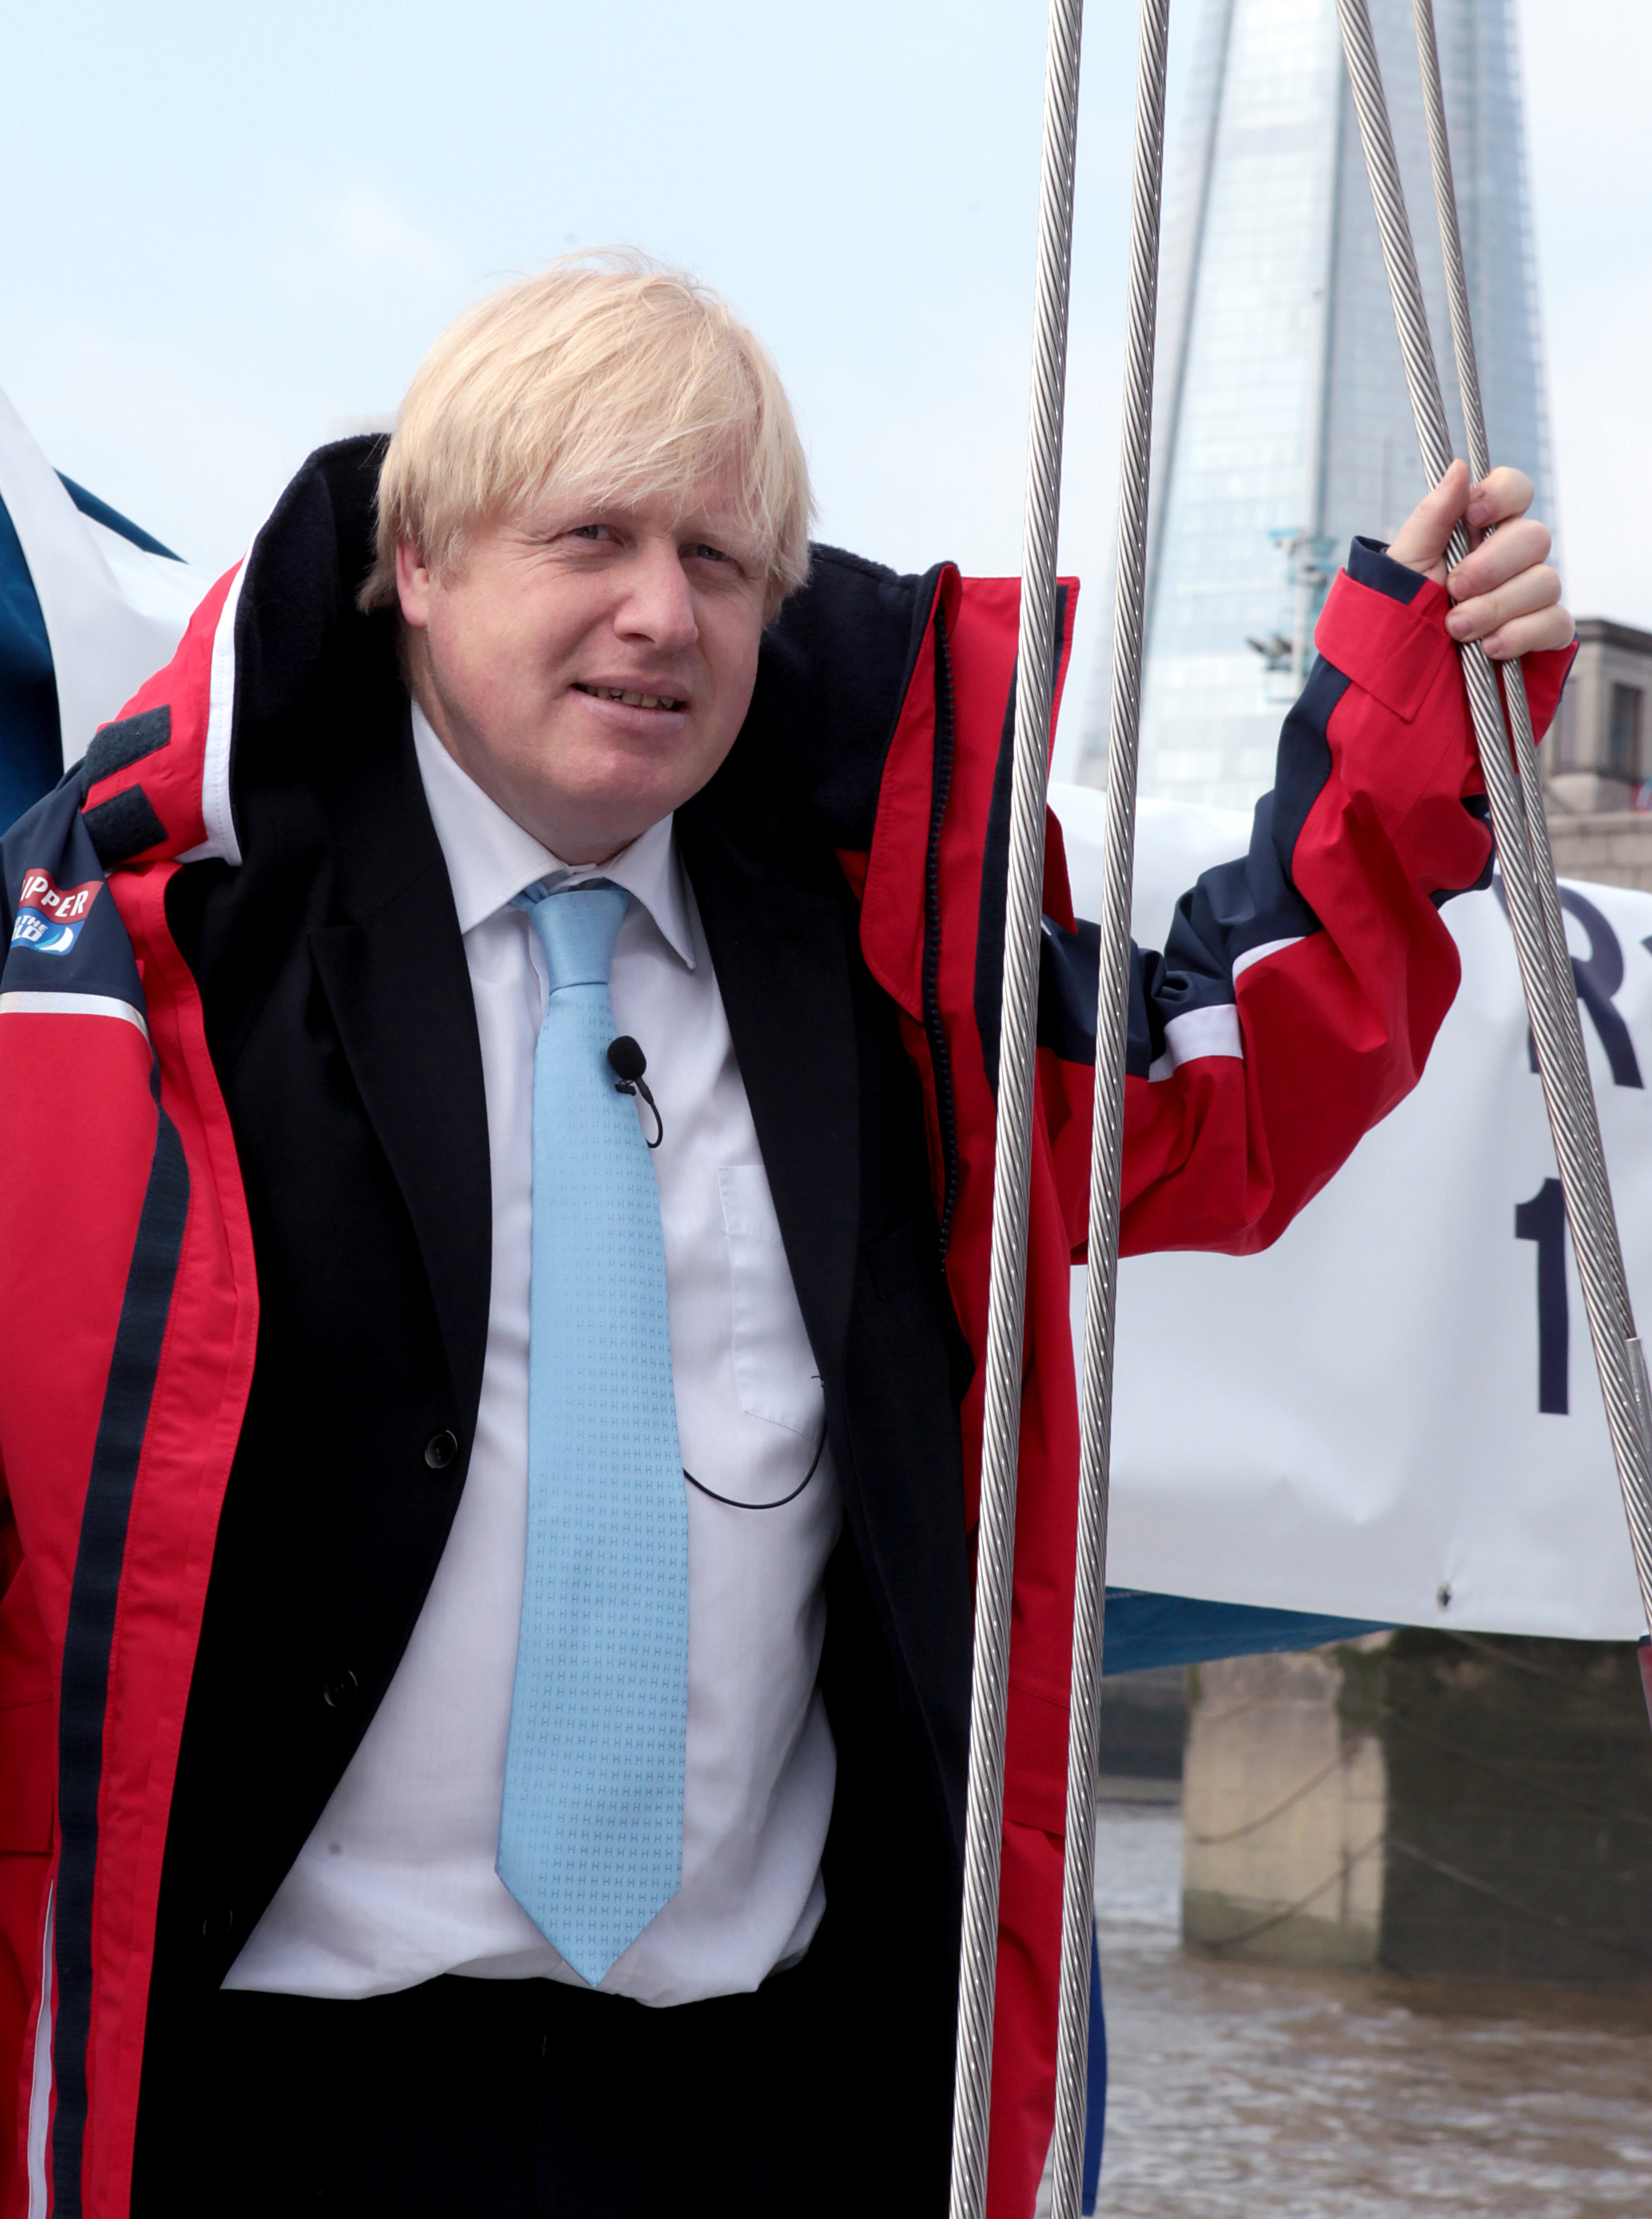 London Mayor Boris Johnson at the announcement for London to host the start and Finish of the 2013-14 edition of the Clipper Round the World Yacht Race, during a photo call in London.